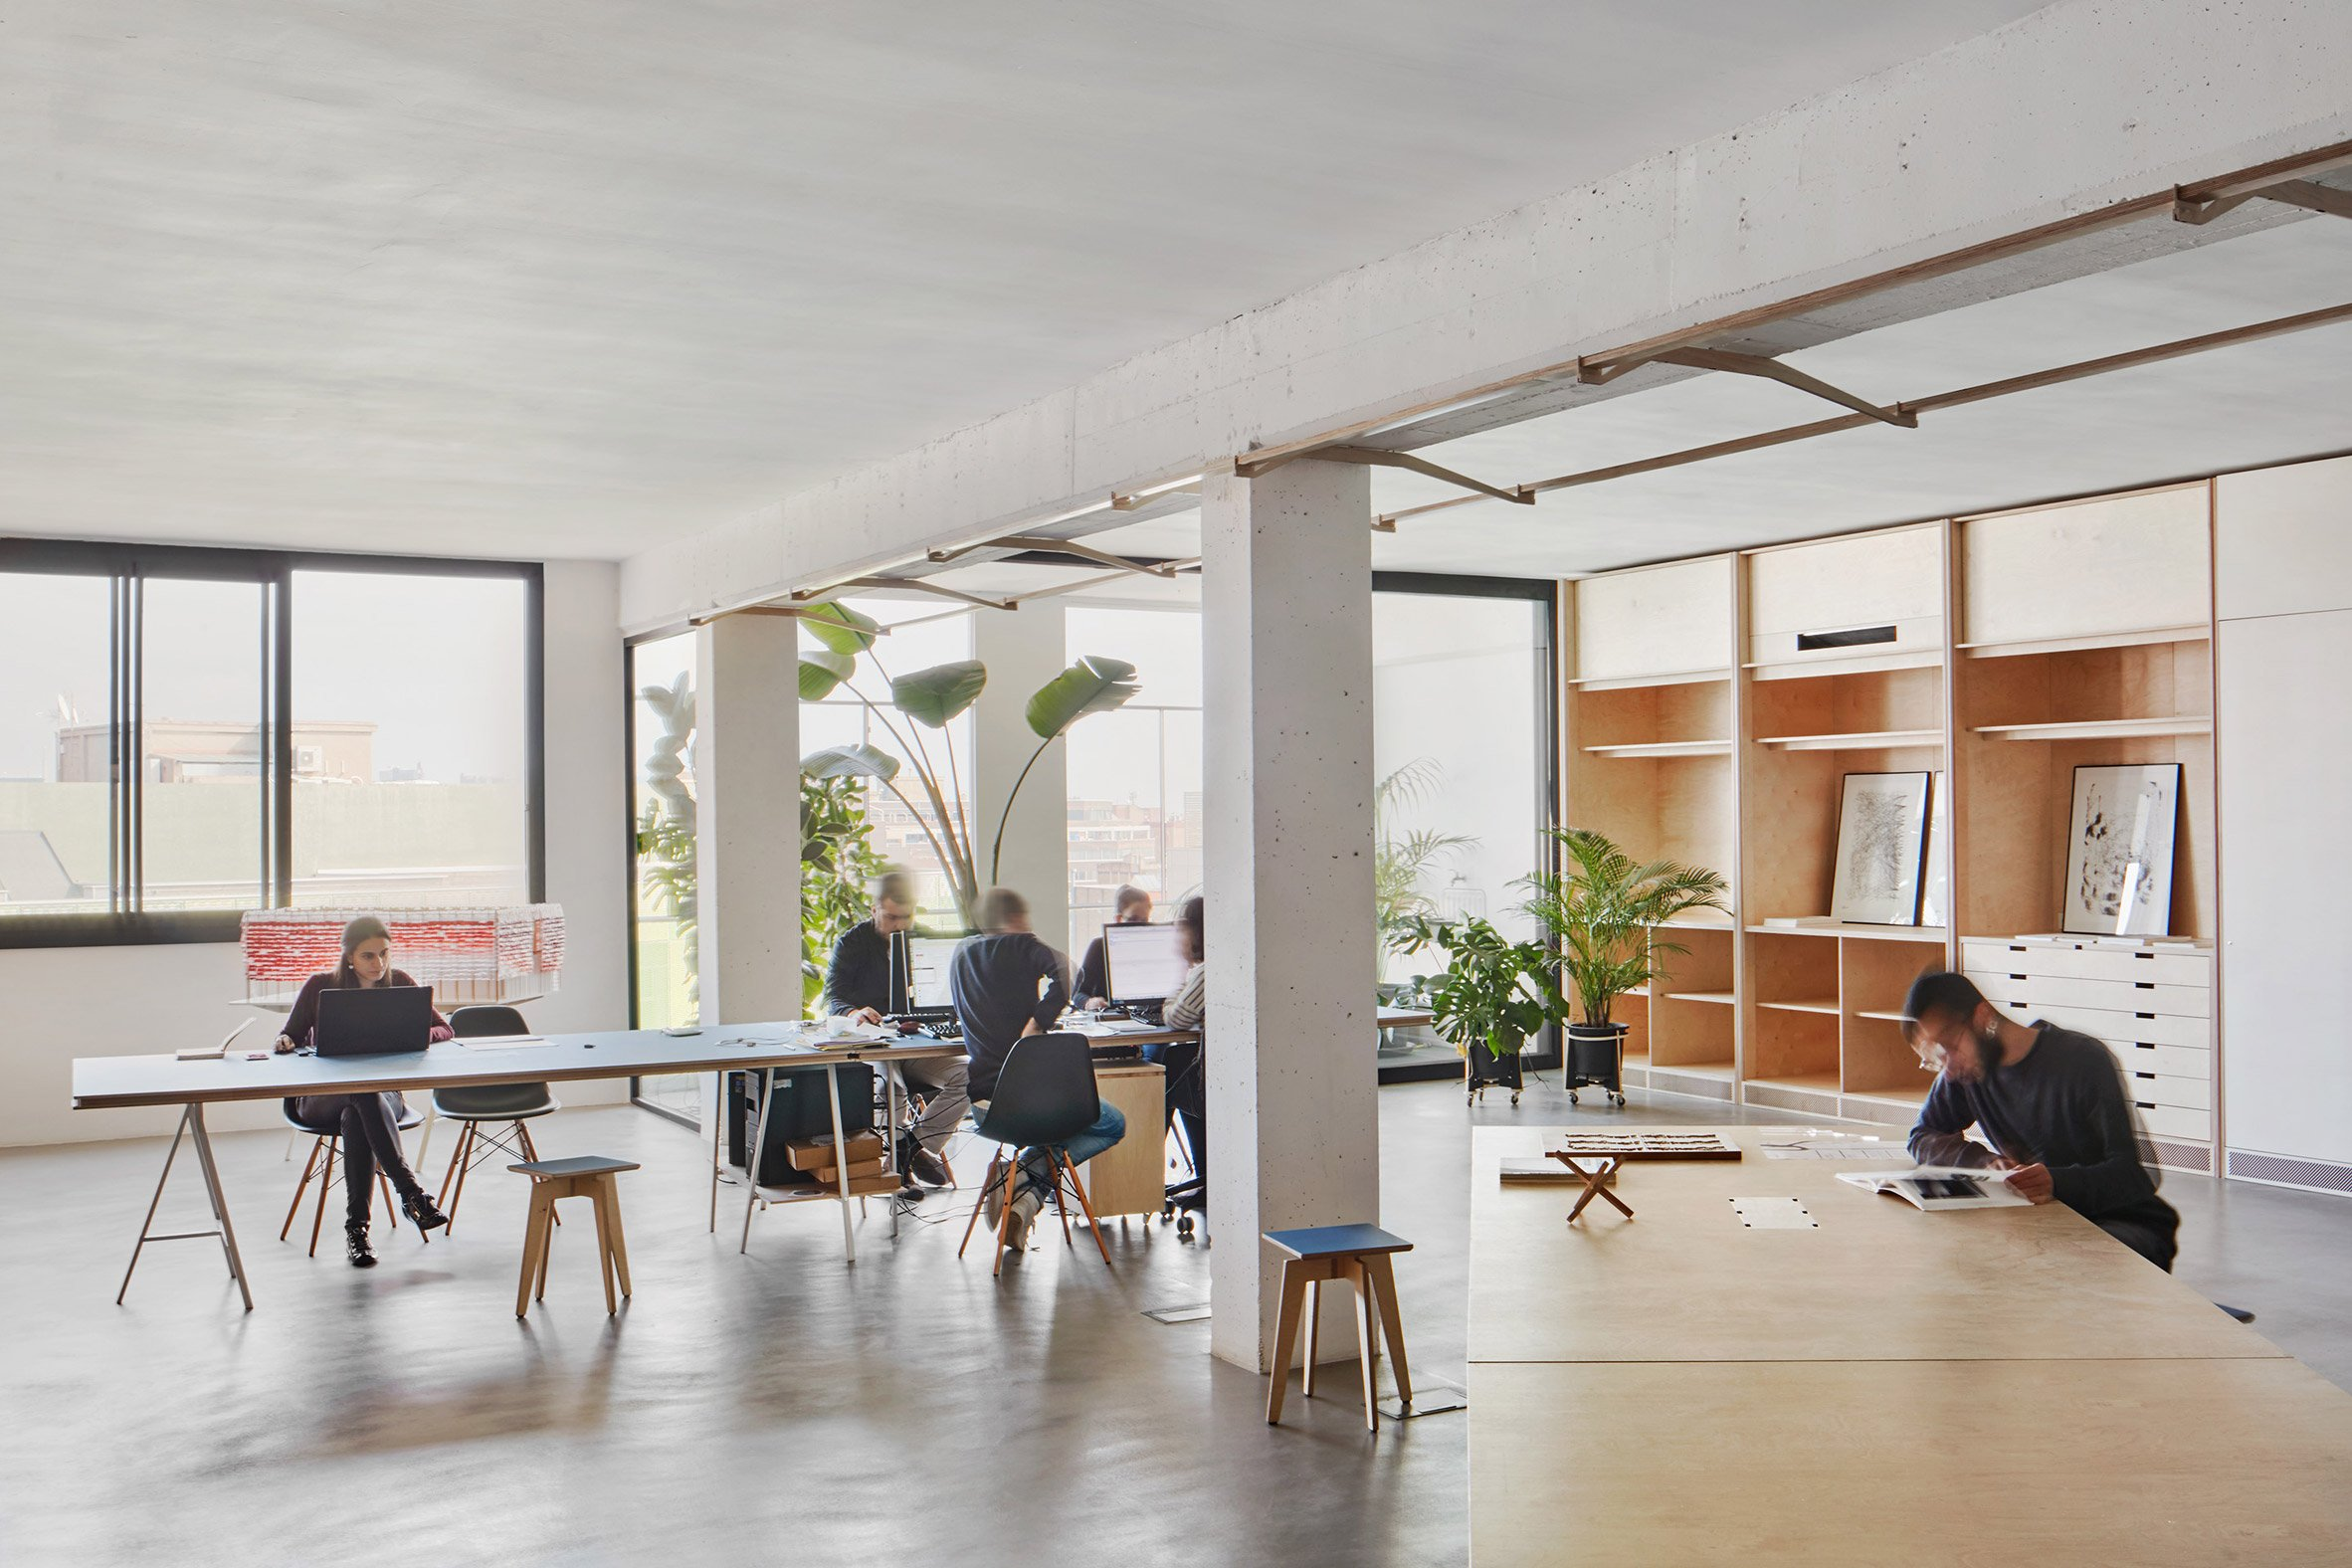 Barcelona warehouse transformed into flexible co-working space for architects and designers